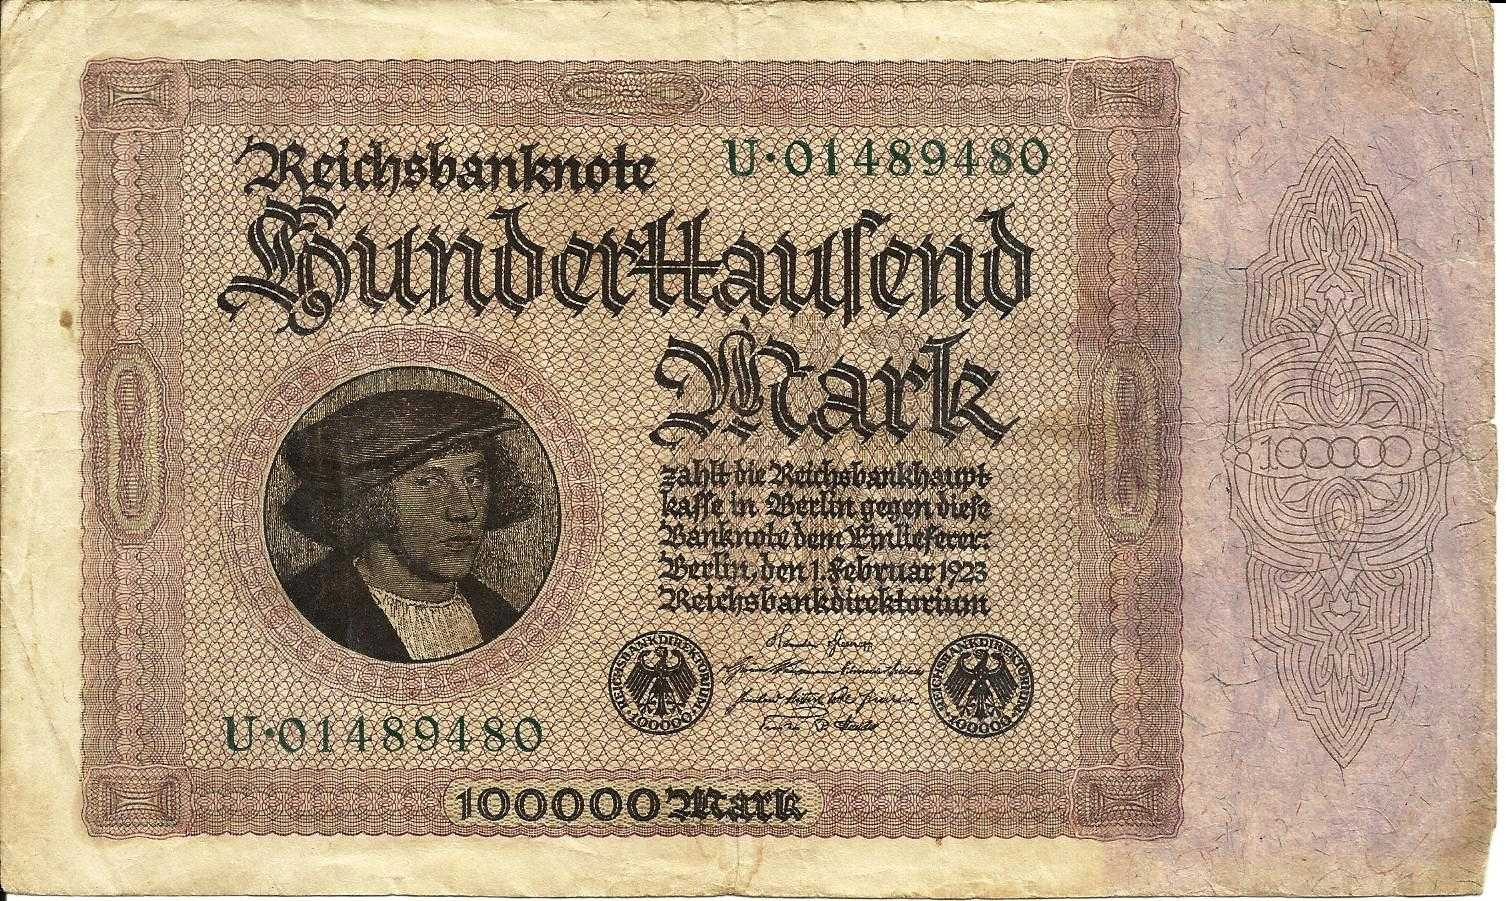 Germany 100 000 Mark 1923 Banknote 01489480 Pick 83a For